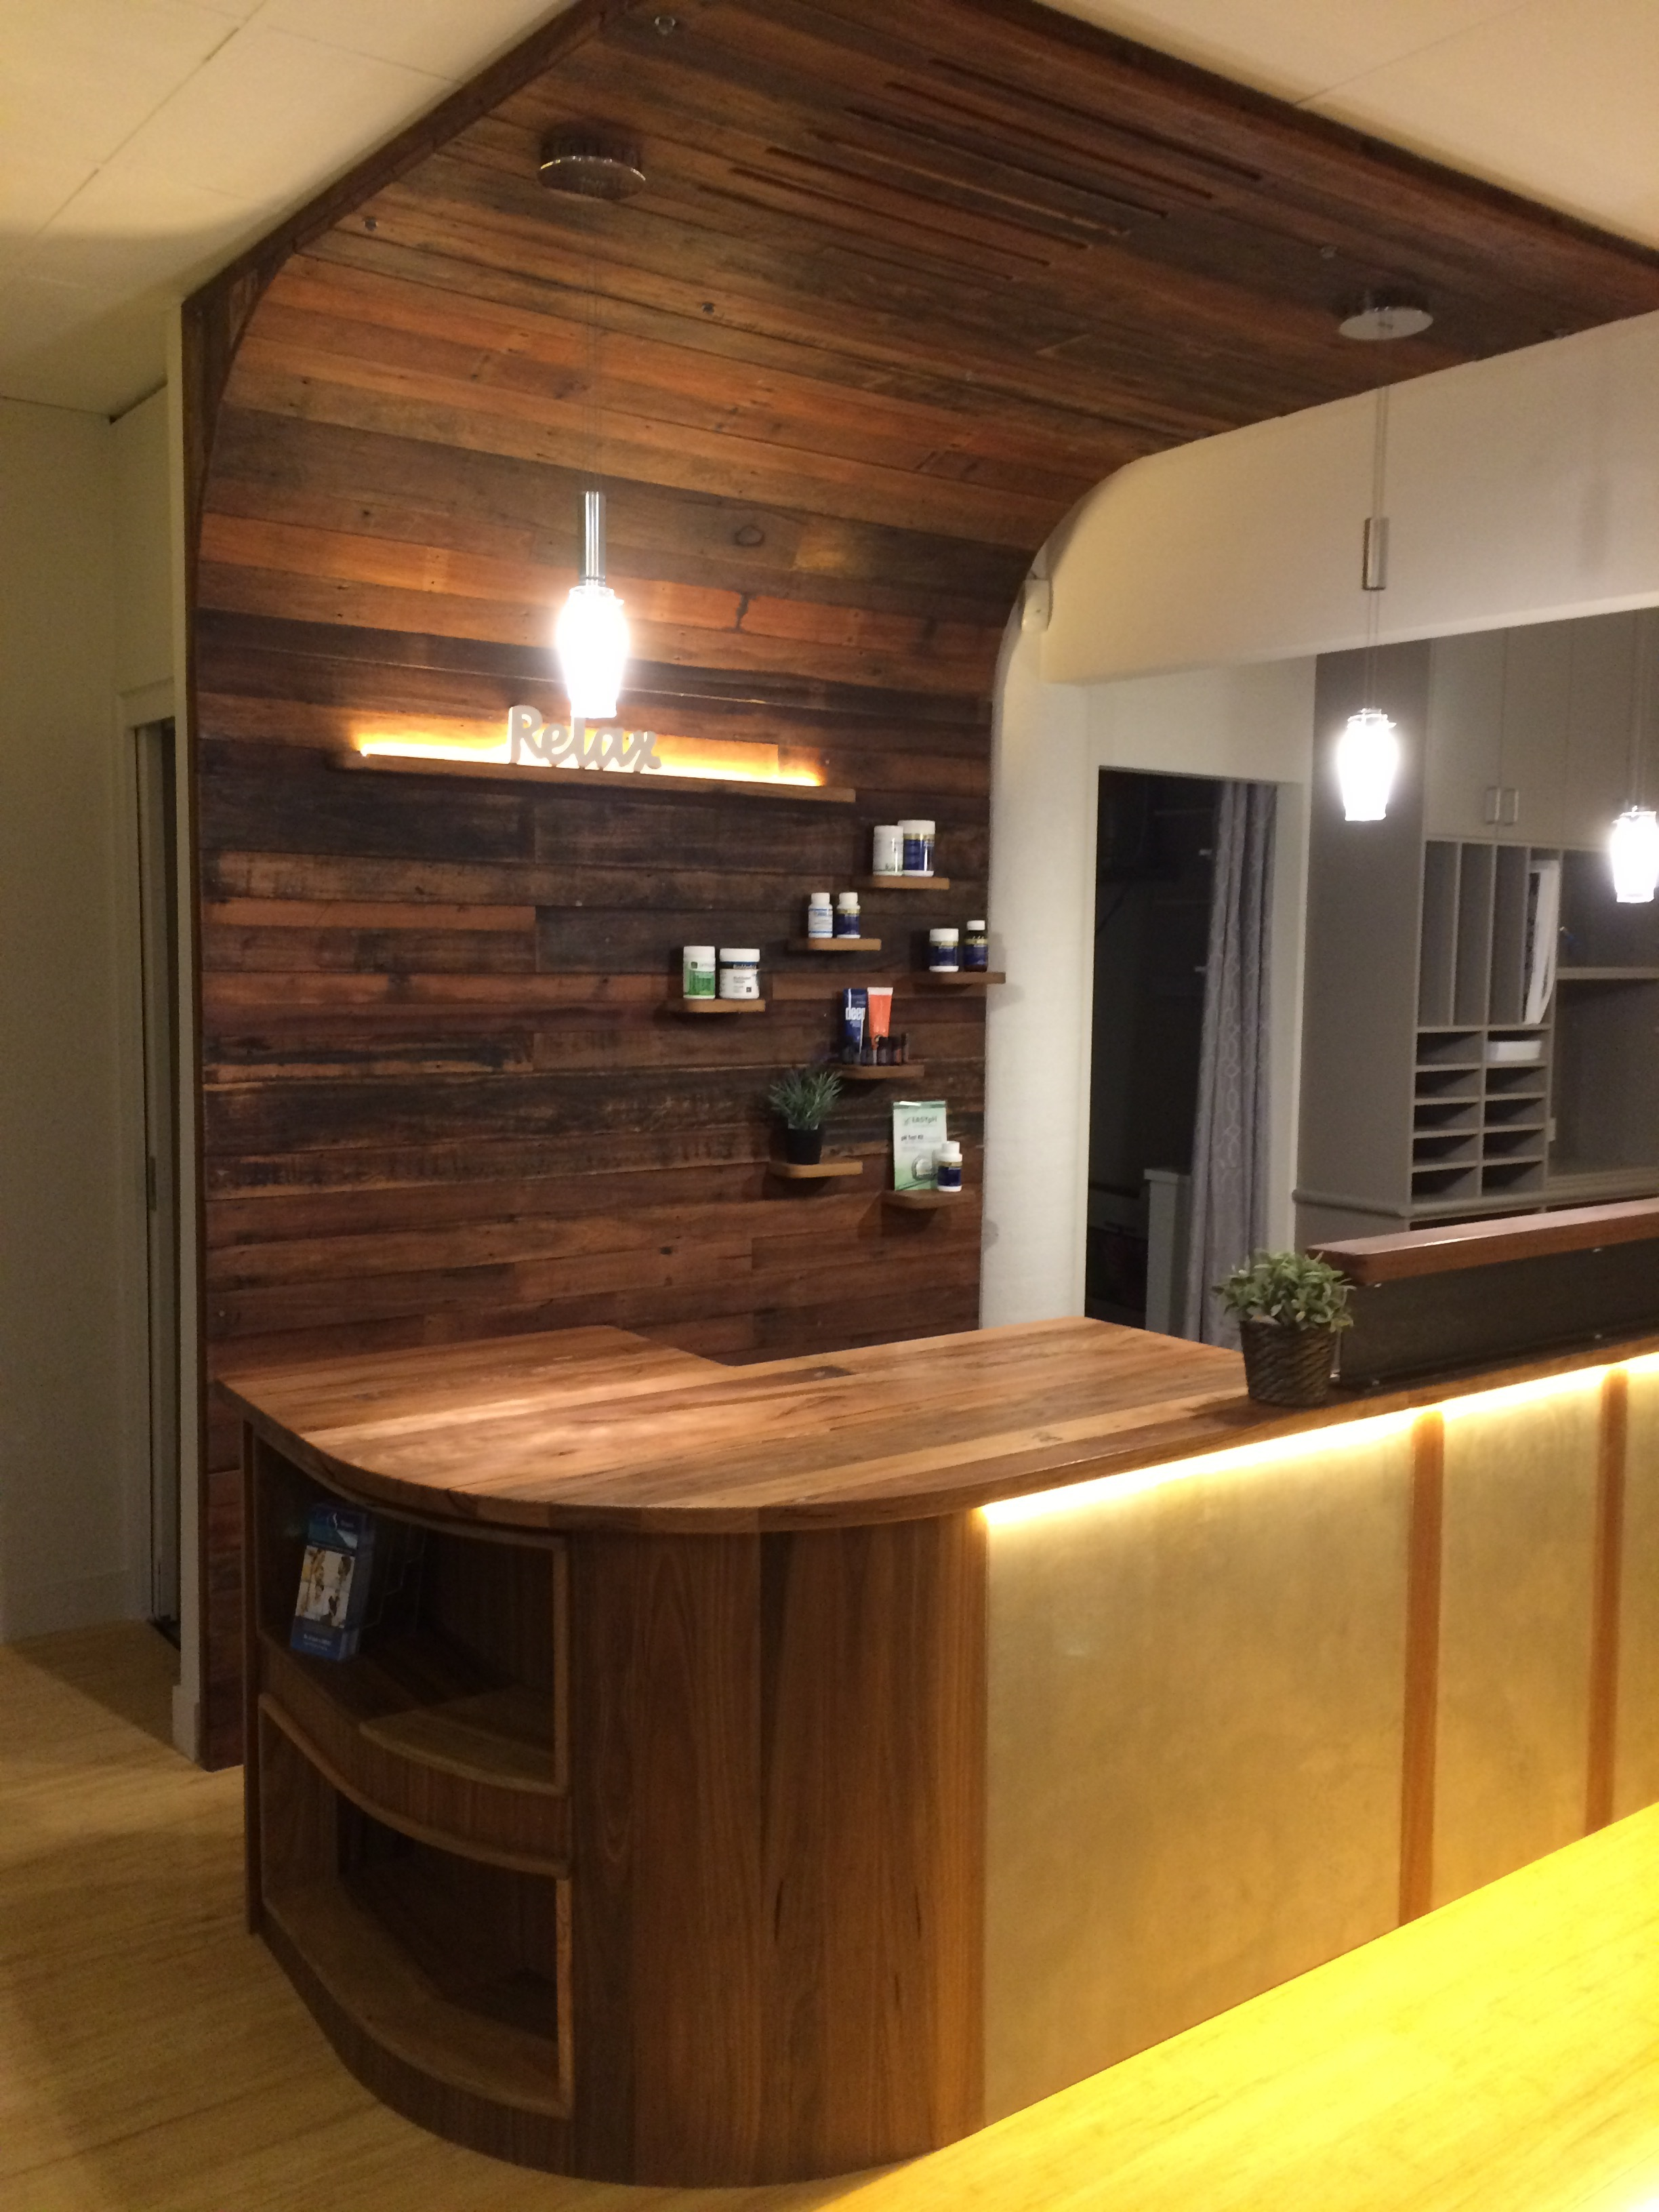 This Reception Desk is made out of Recycle timber and Concrete with a Recycle timber back wall to add warmth to the space.